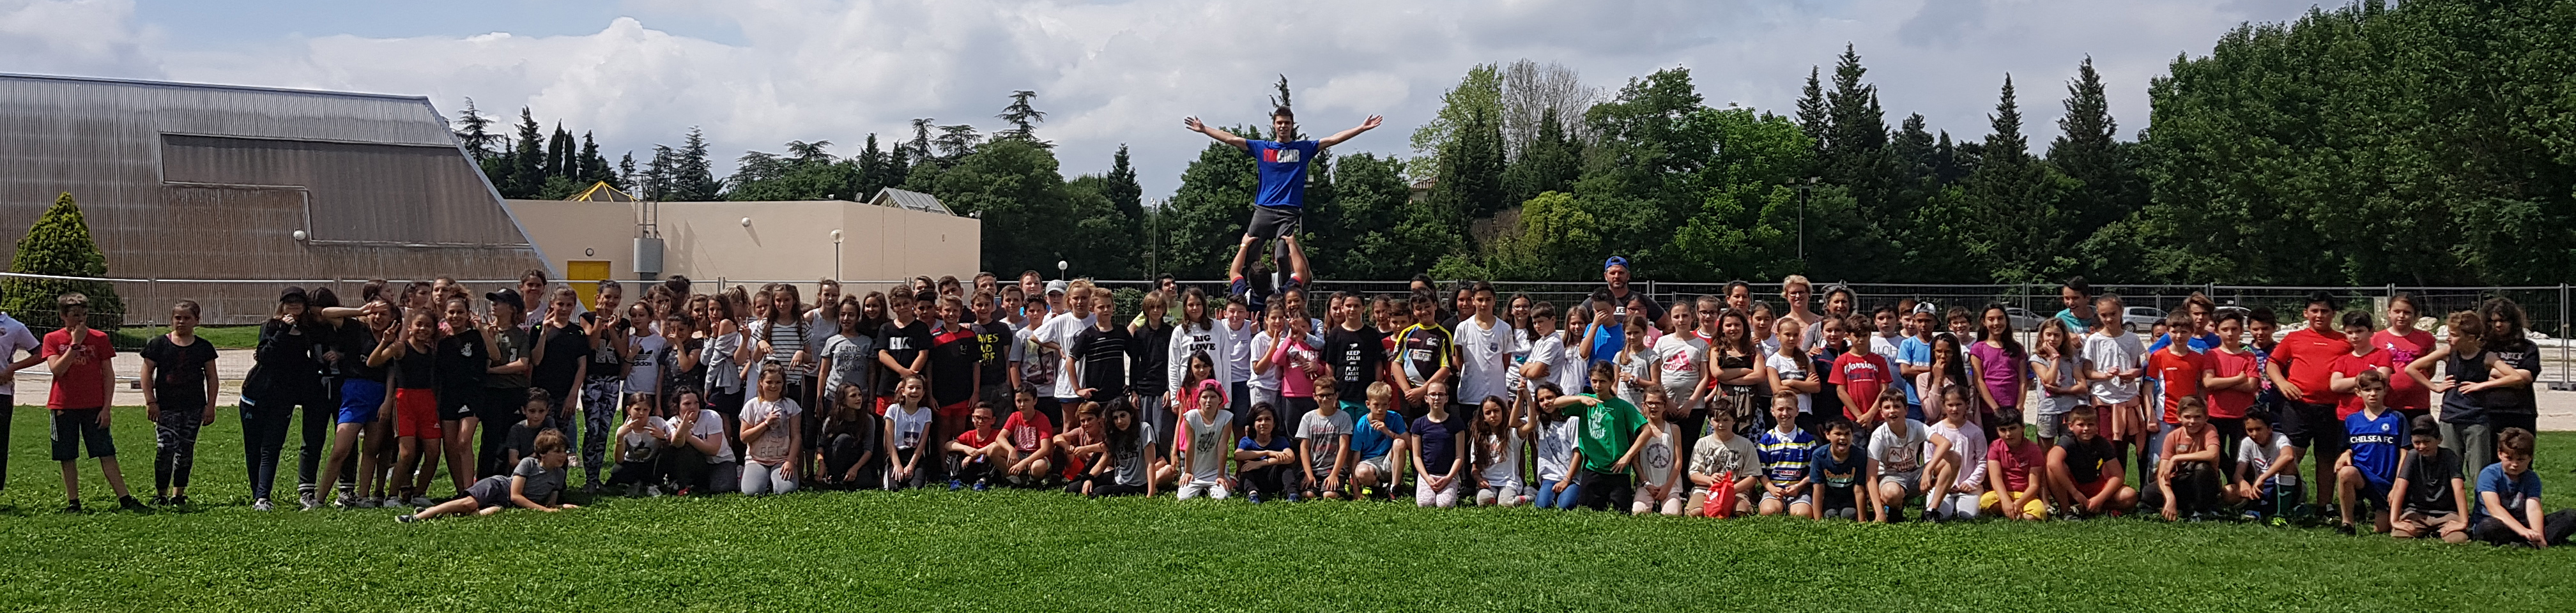 Rencontre rugby 2018